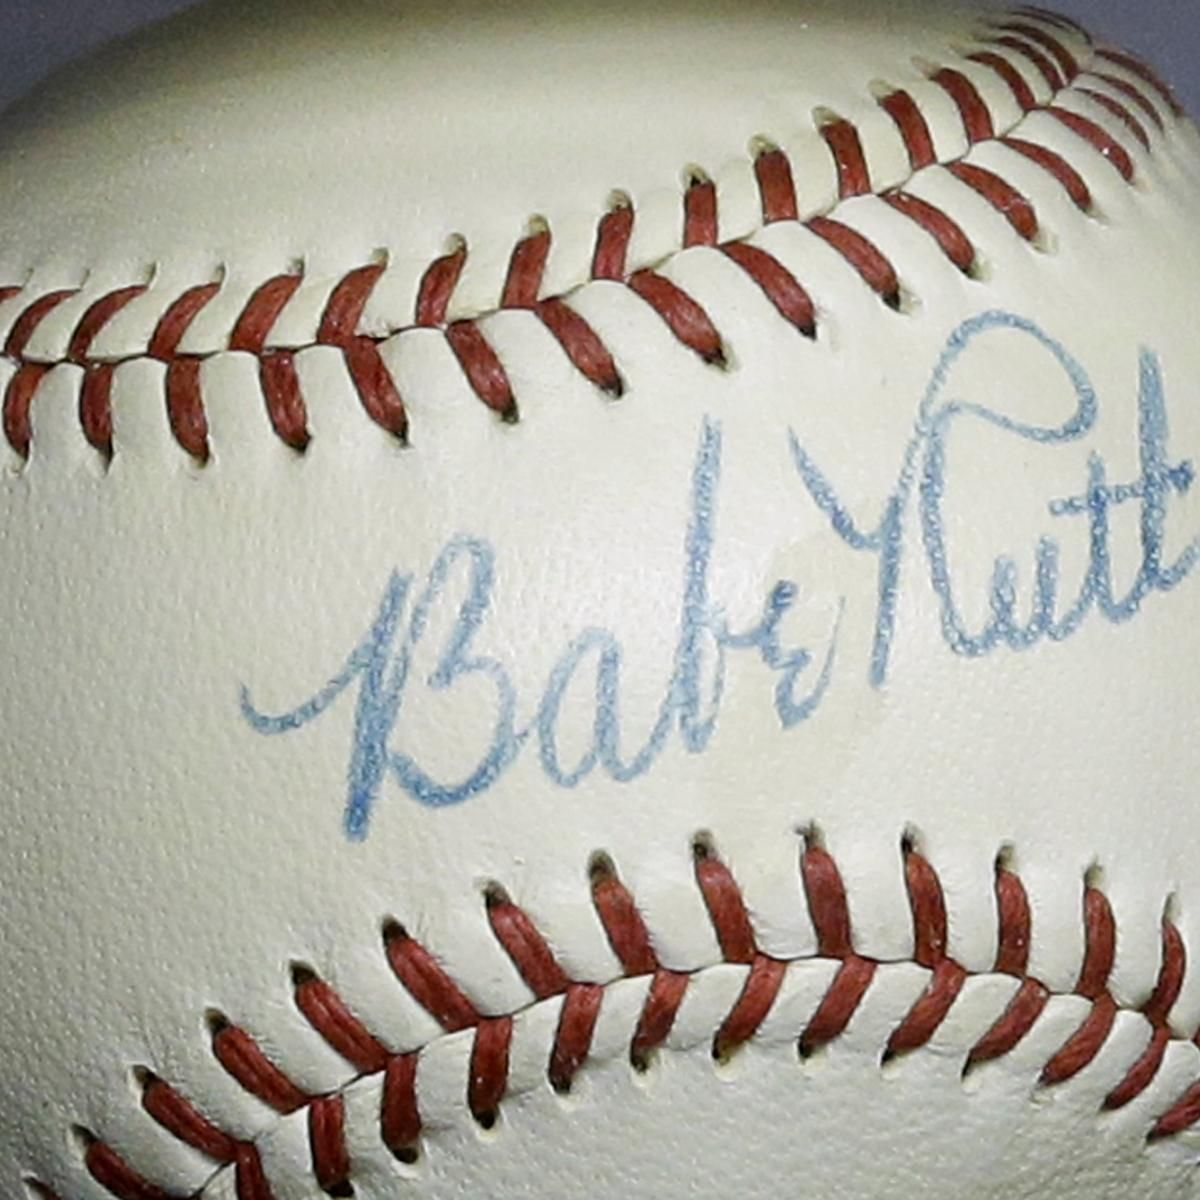 Ball signed by babe ruth 10 other baseball hof inductees